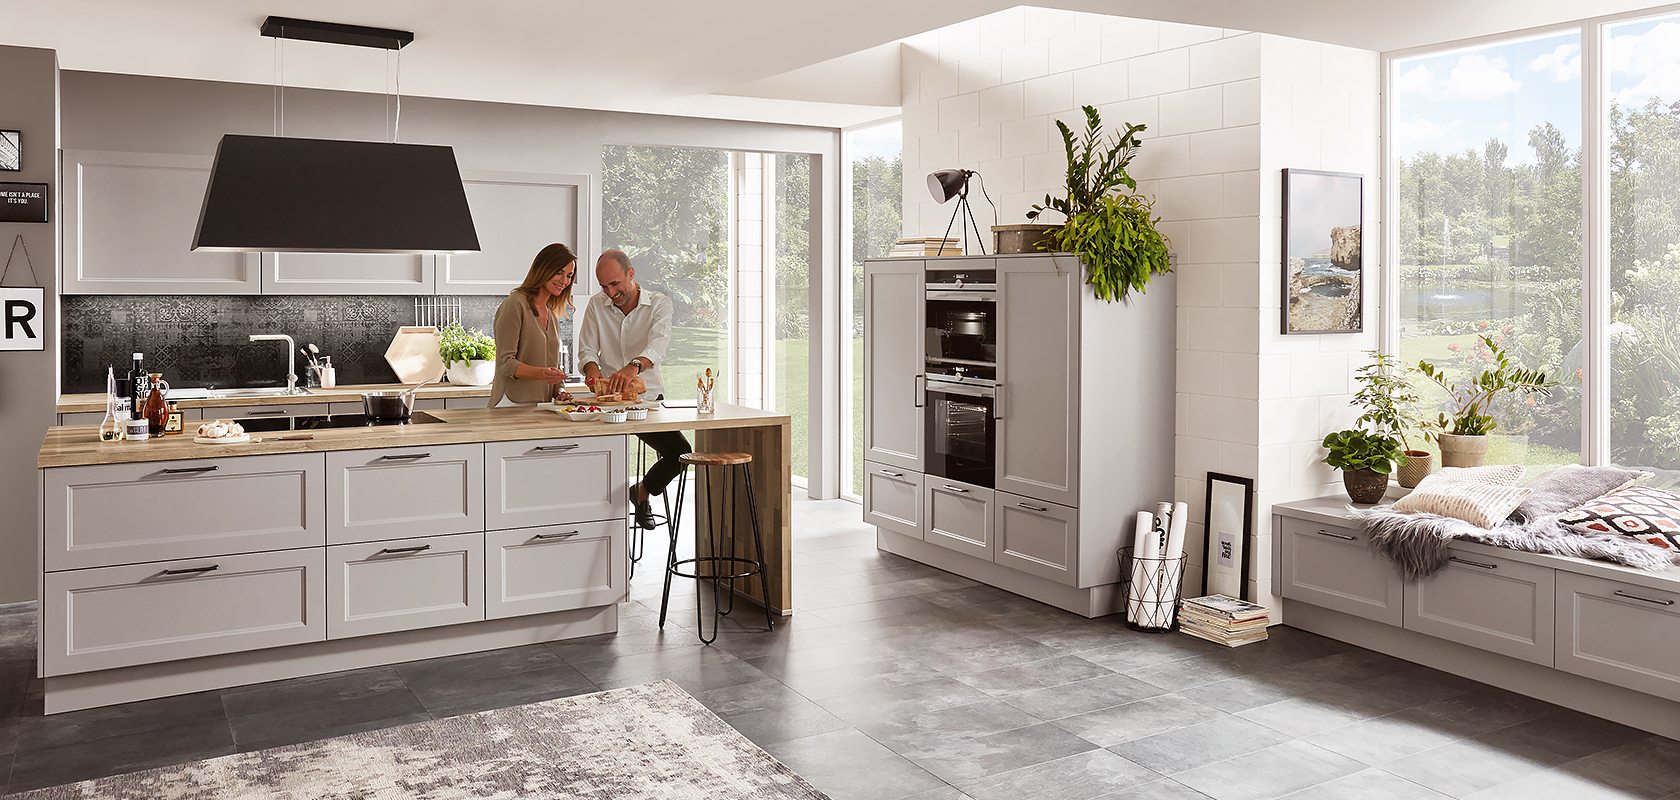 Get the finest units, worktops and appliances for your budget.